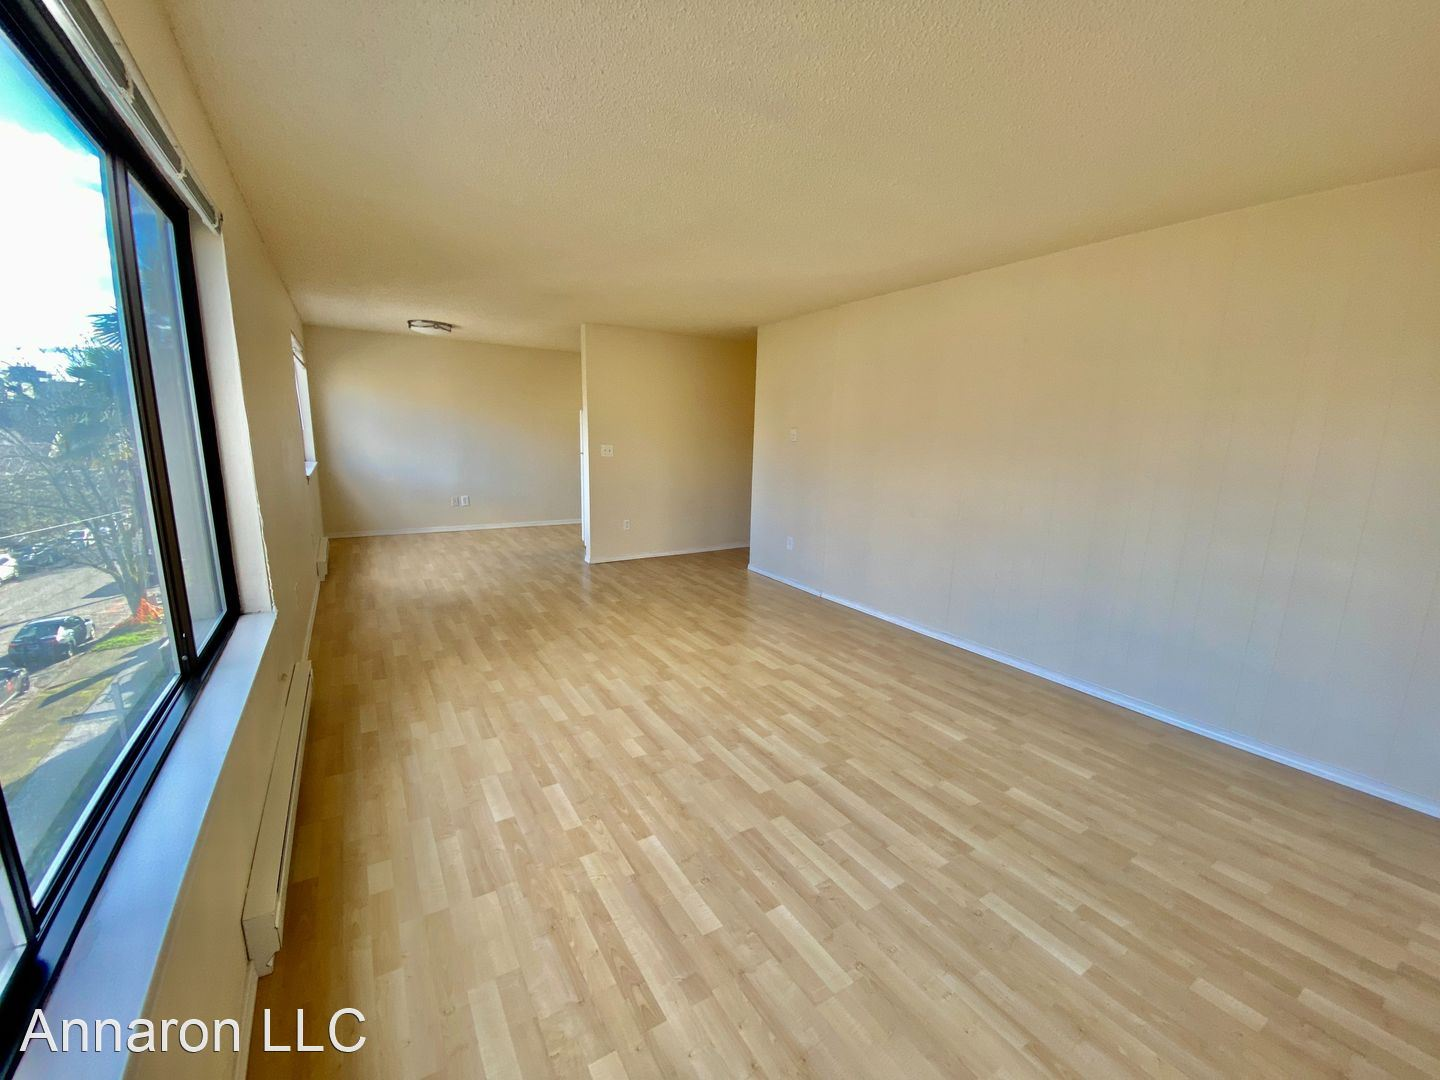 1727 14th Ave. Annaron@northwestapartments.com